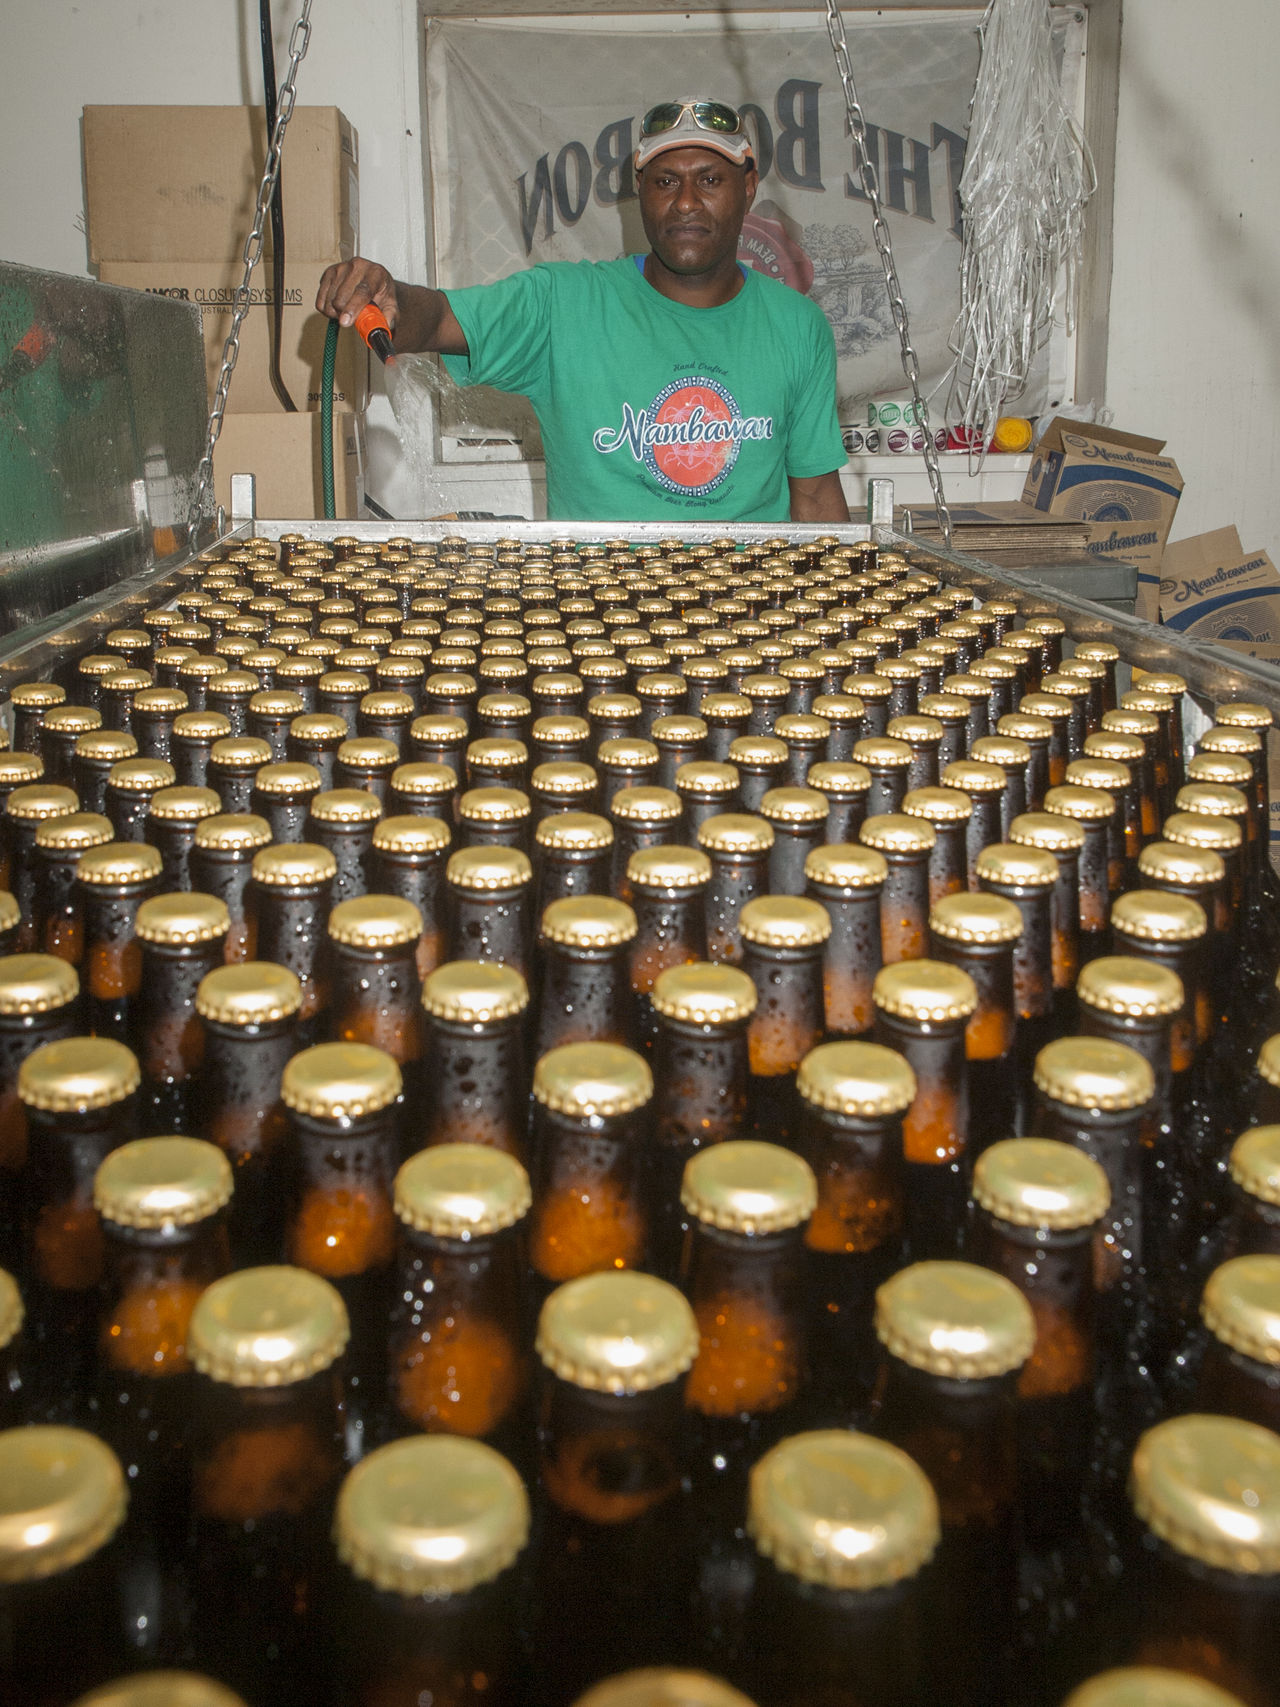 Nambawan Brewing Co Lini Highway Port Vila Vanuatu Abundance Arrangement Brown Circle Culture Indoors  Large Group Of Objects Nambawan Brewing Co Port Vila Vanuatu Surface Level Vivid International